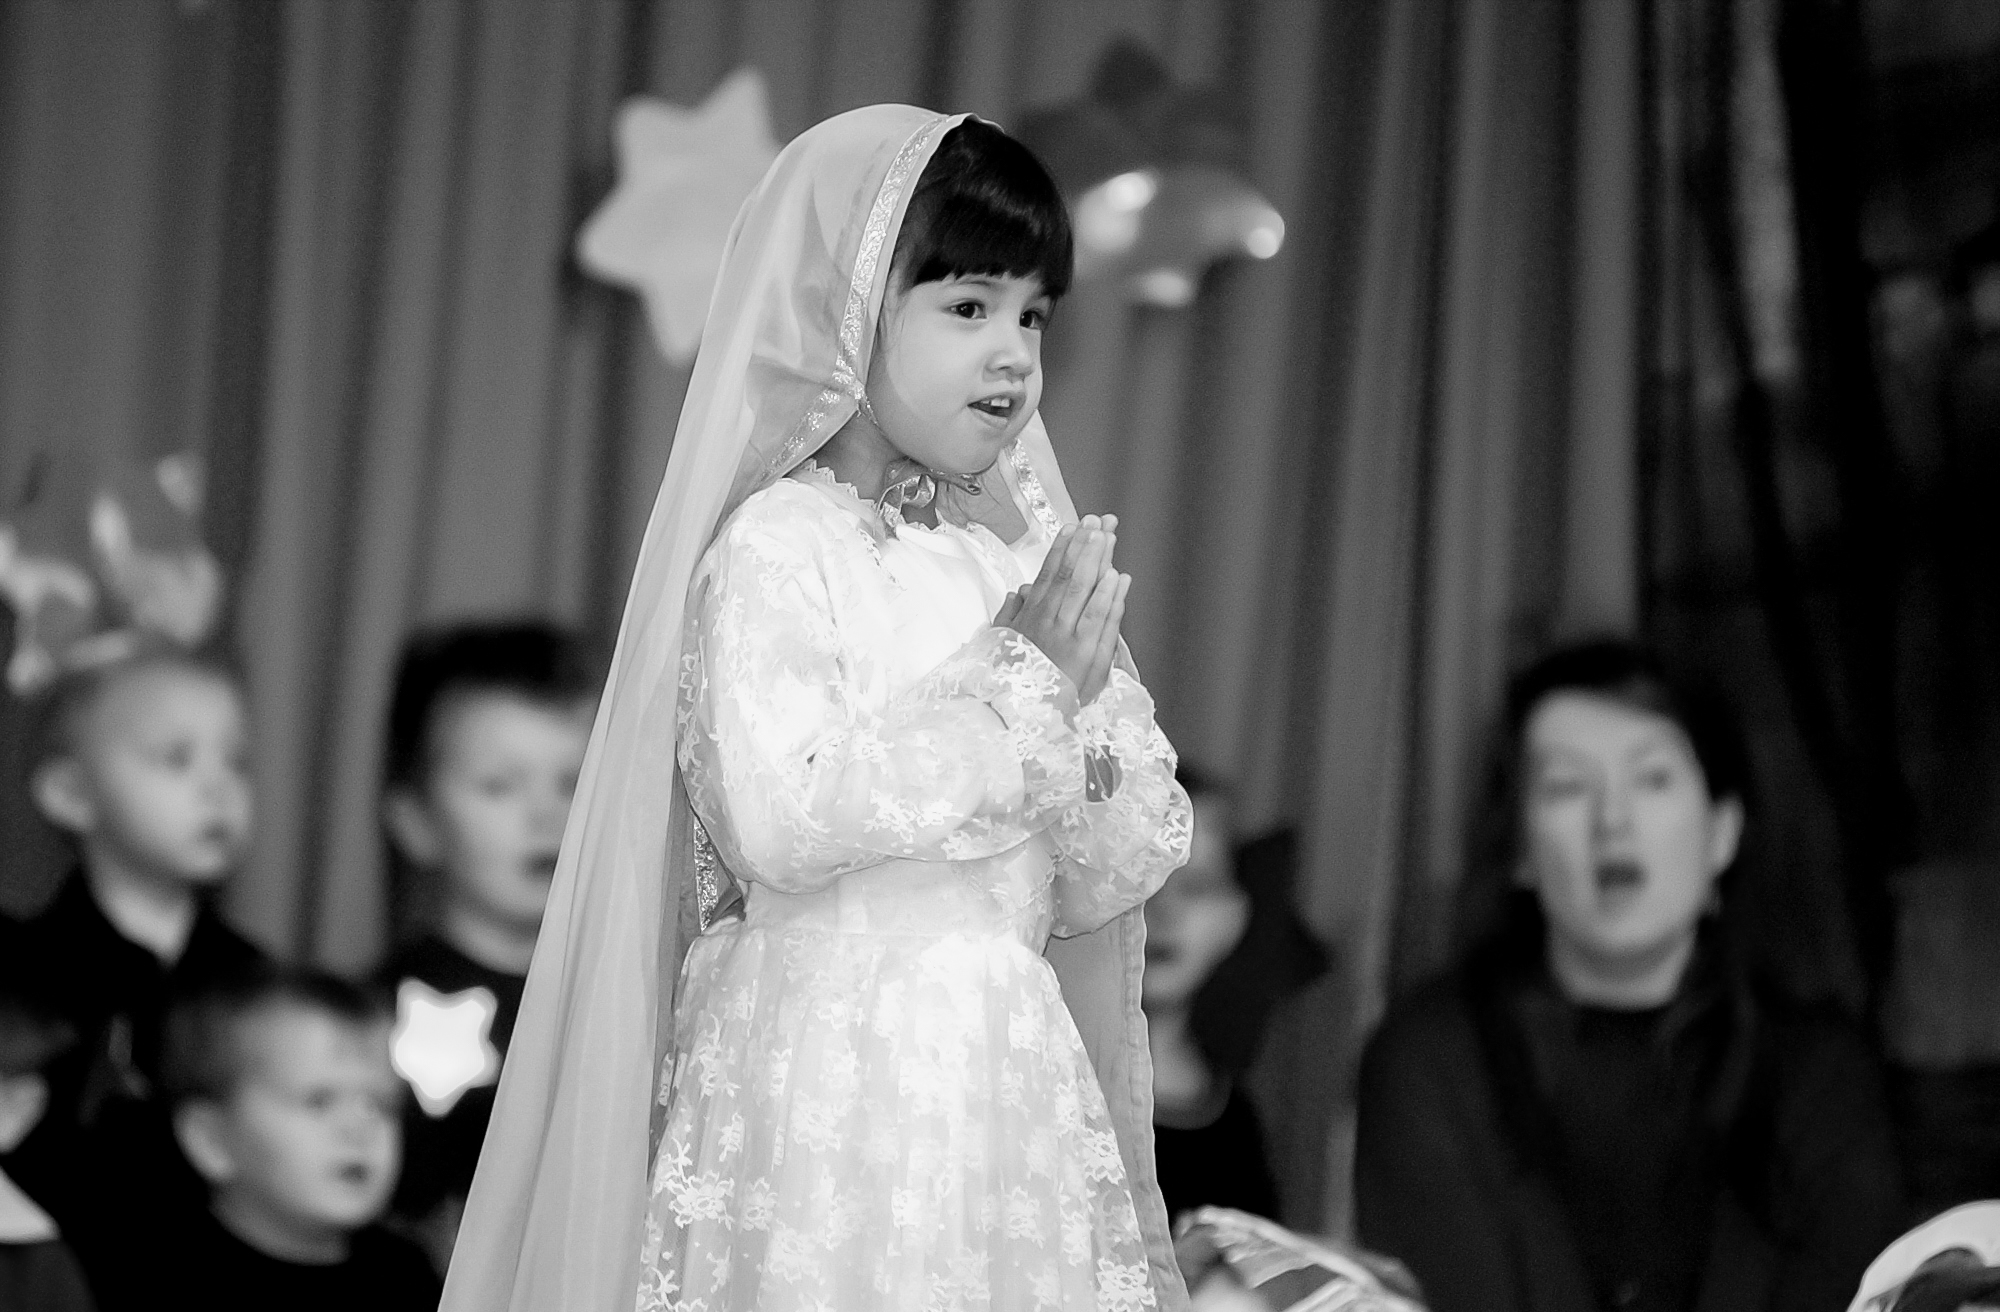 GCOOK-GINGKO-SCHOOLS-EVENT-PHOTOGRAPHY-1